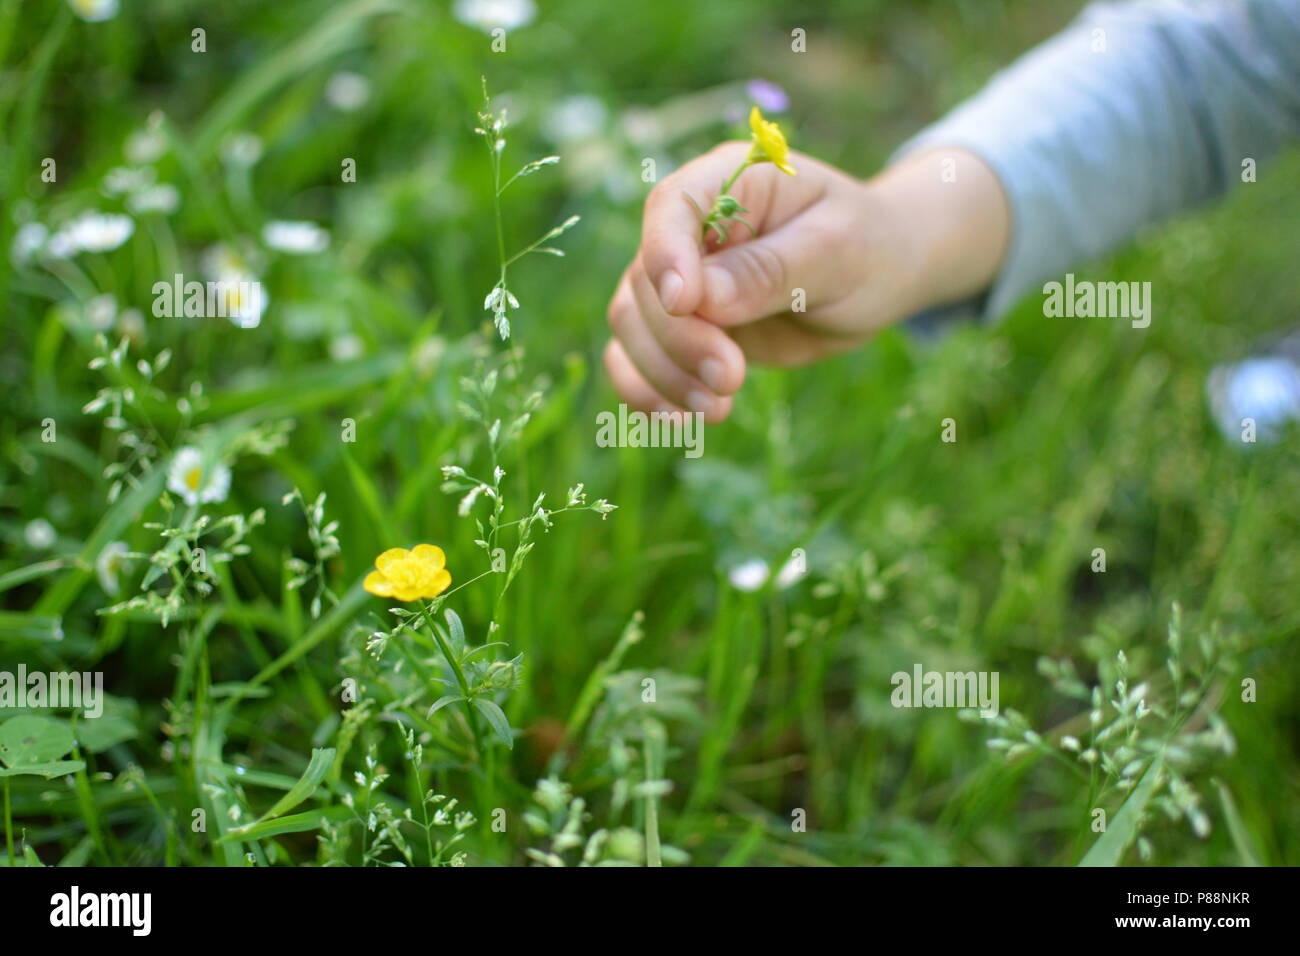 A CHILD HAND GRABING A YELLOW FLOWER Stock Photo